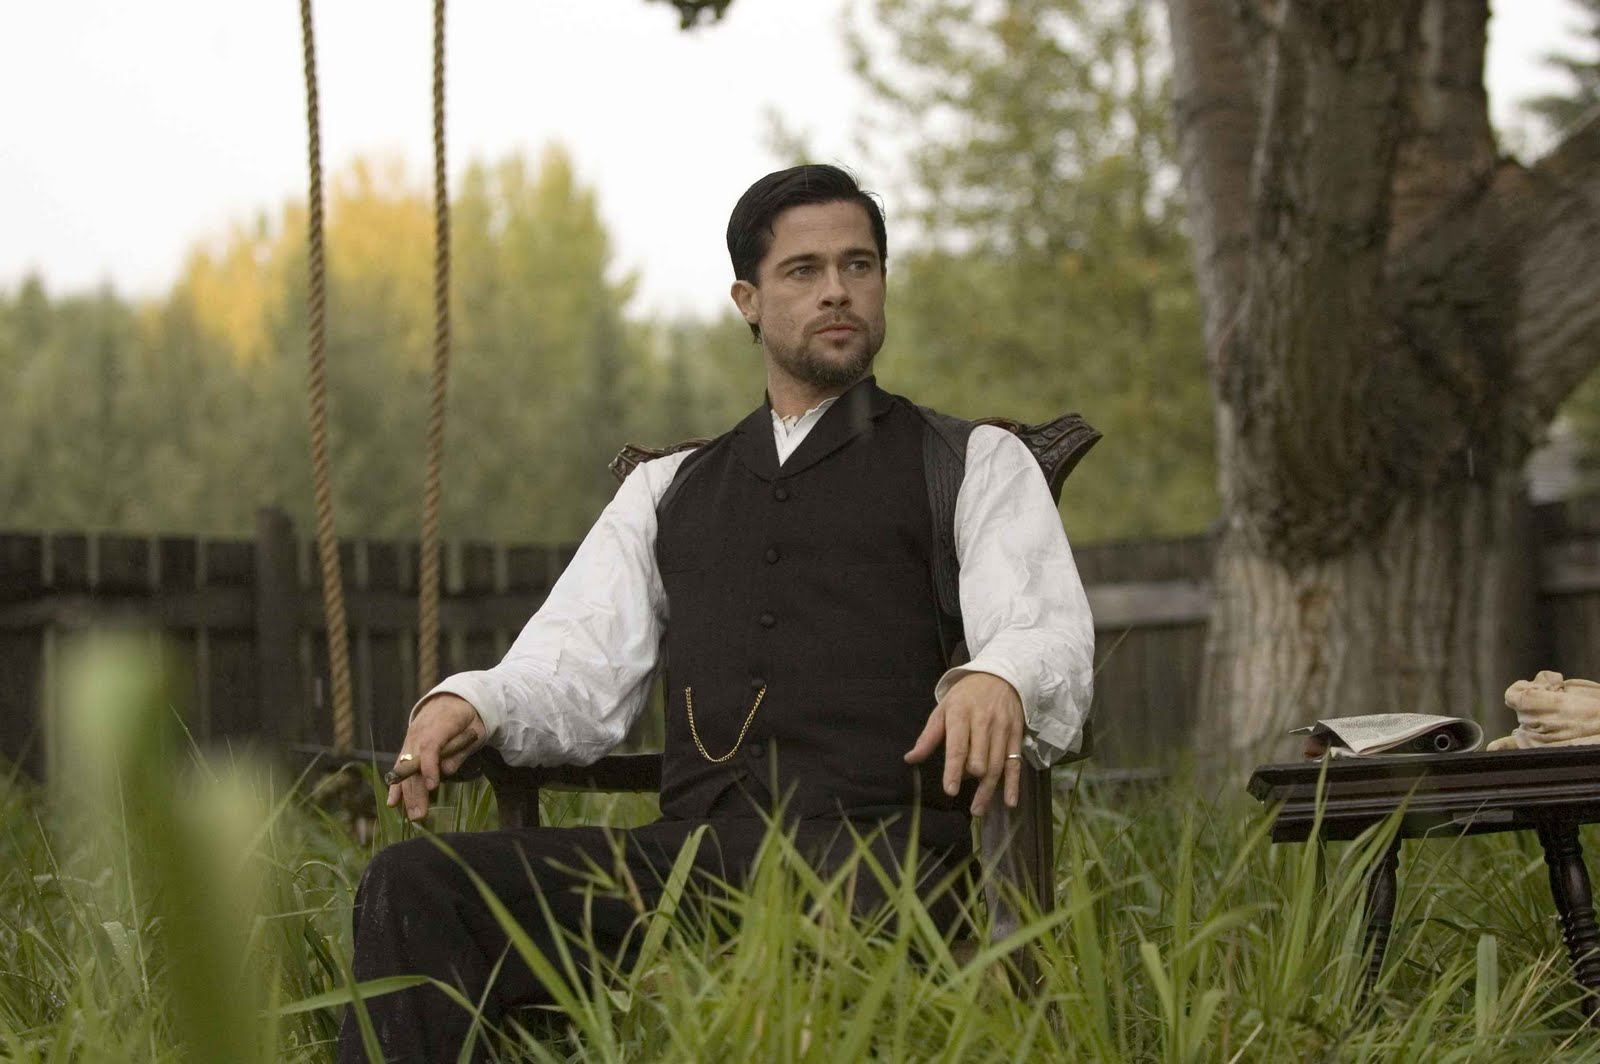 http://4.bp.blogspot.com/_4ksGK-UgfSs/TRSxURcYcZI/AAAAAAAAAvw/YhppOxdzRBM/s1600/2007_the_assassination_of_jesse_james_by_the_coward_robert_ford_011.jpg